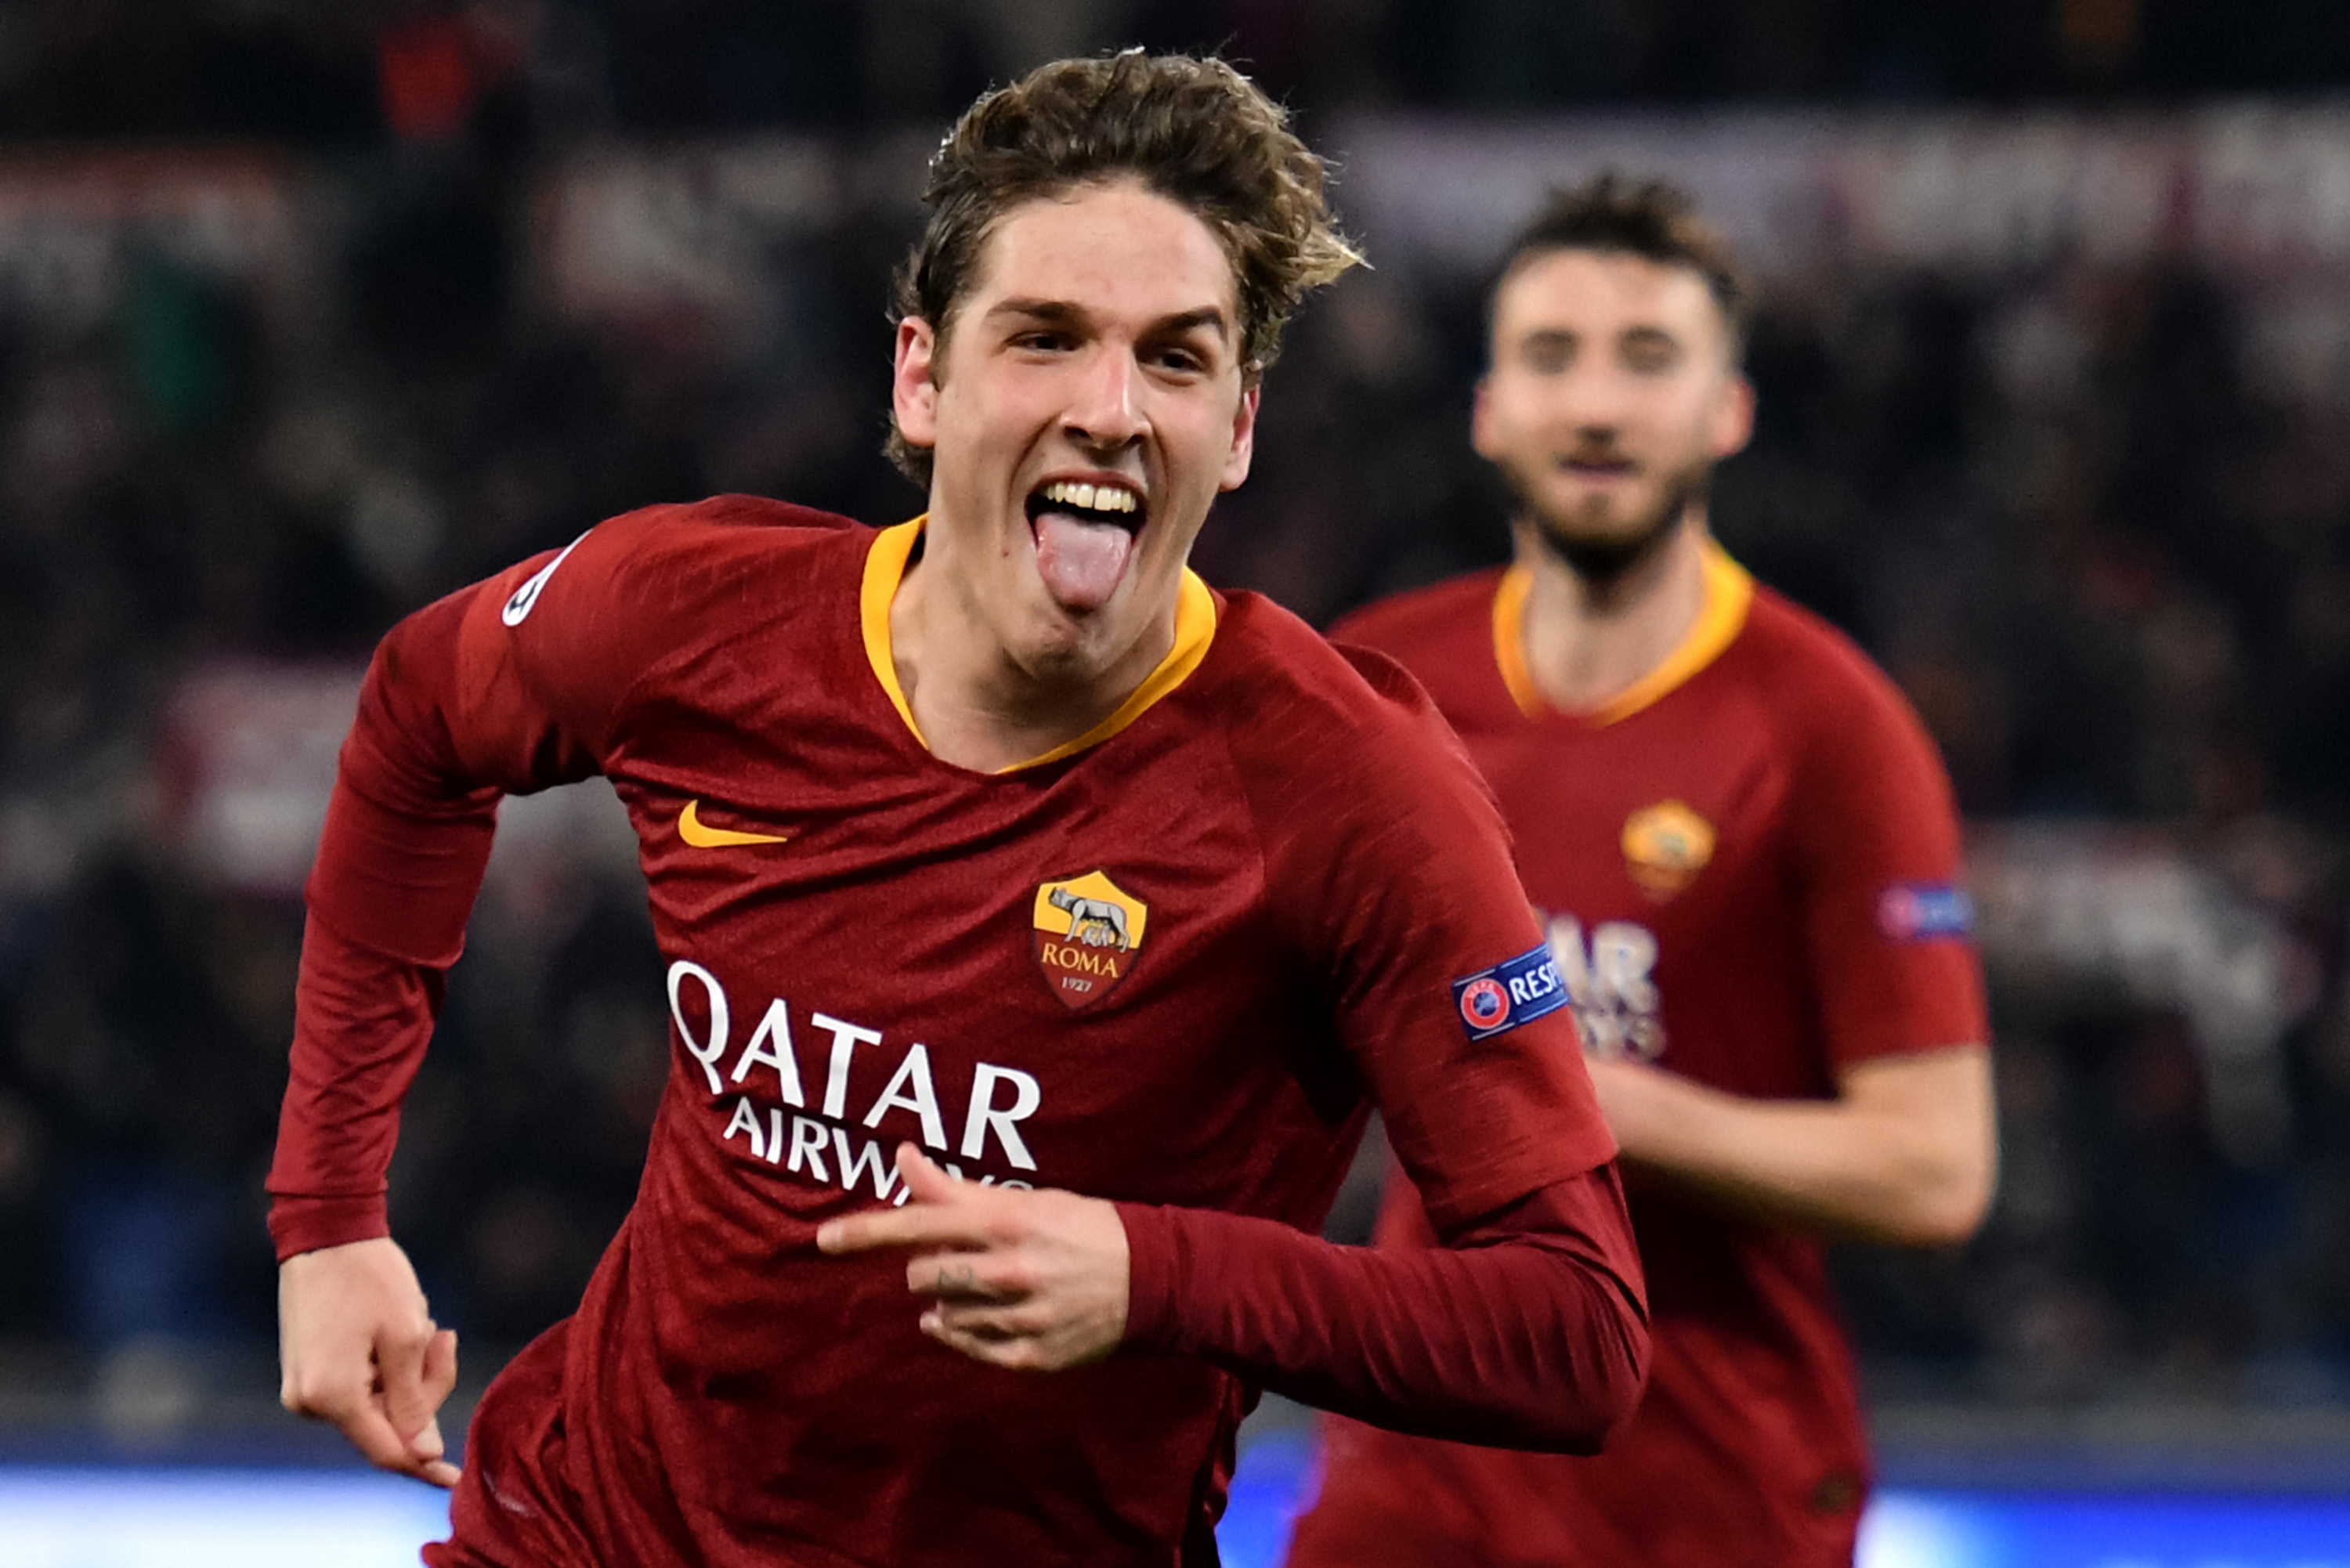 Zaniolo is one of Europe's top prospects. Image: PA Images